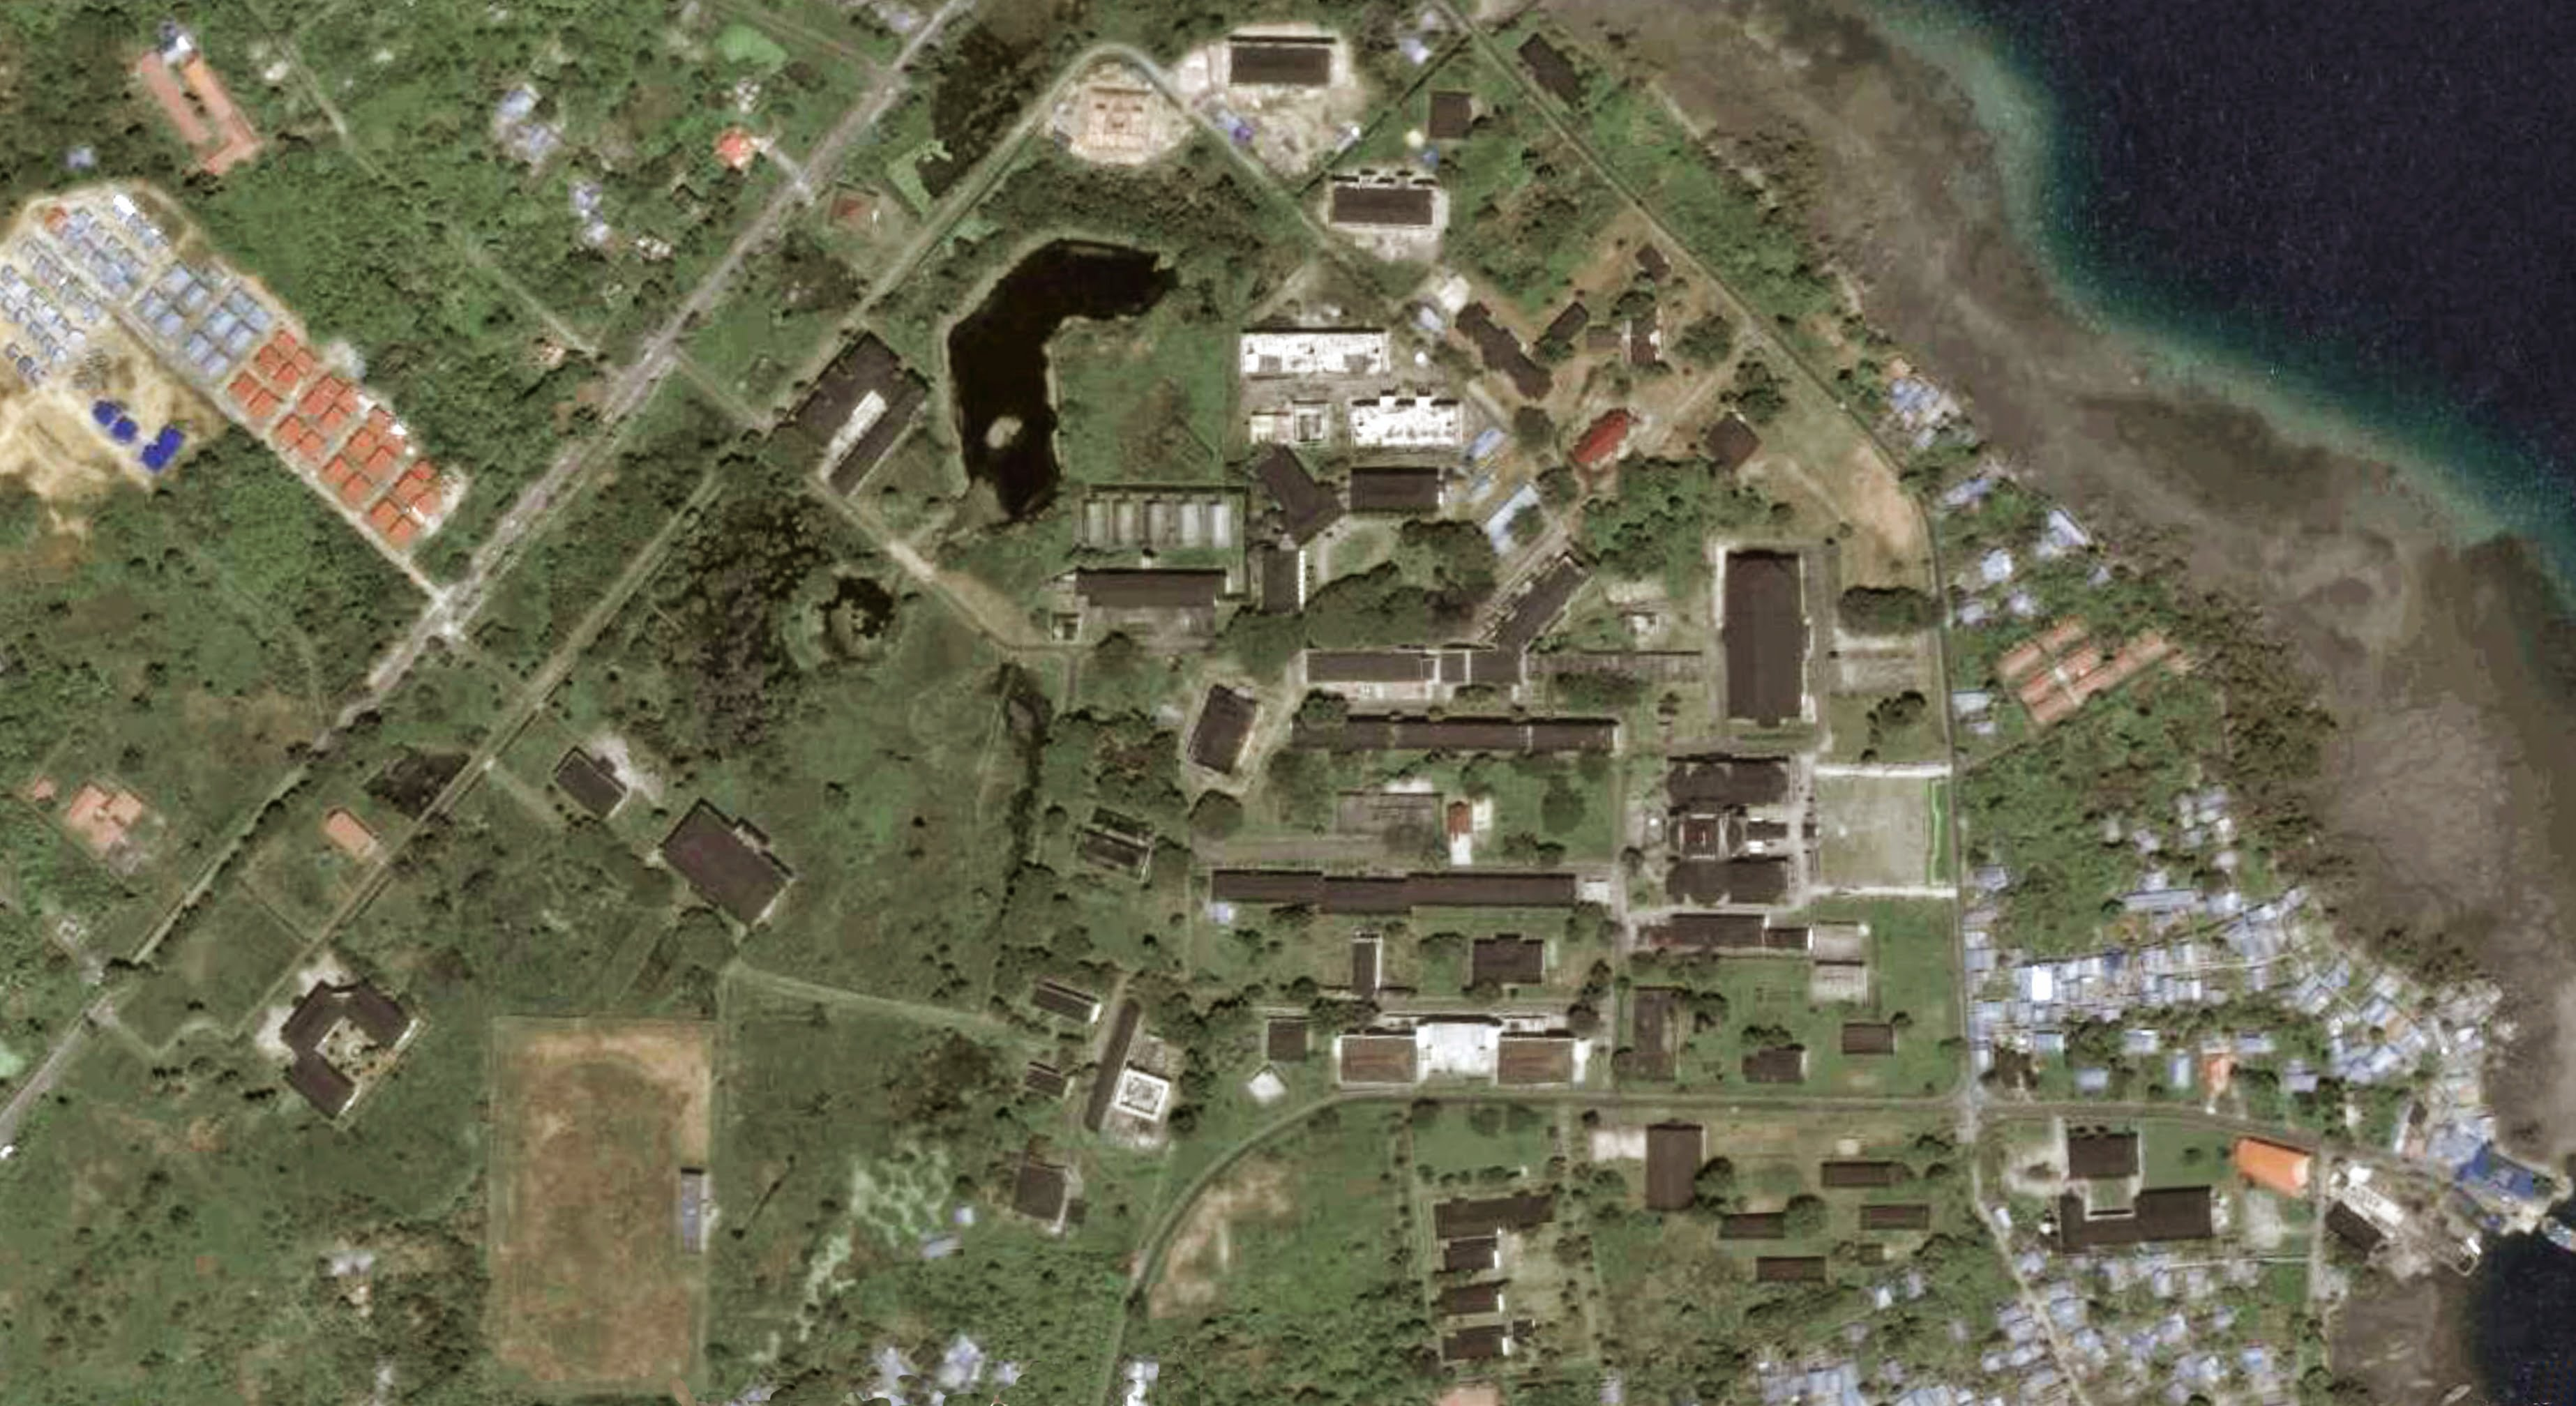 Universitas Pattimura campus aerial.1383471346